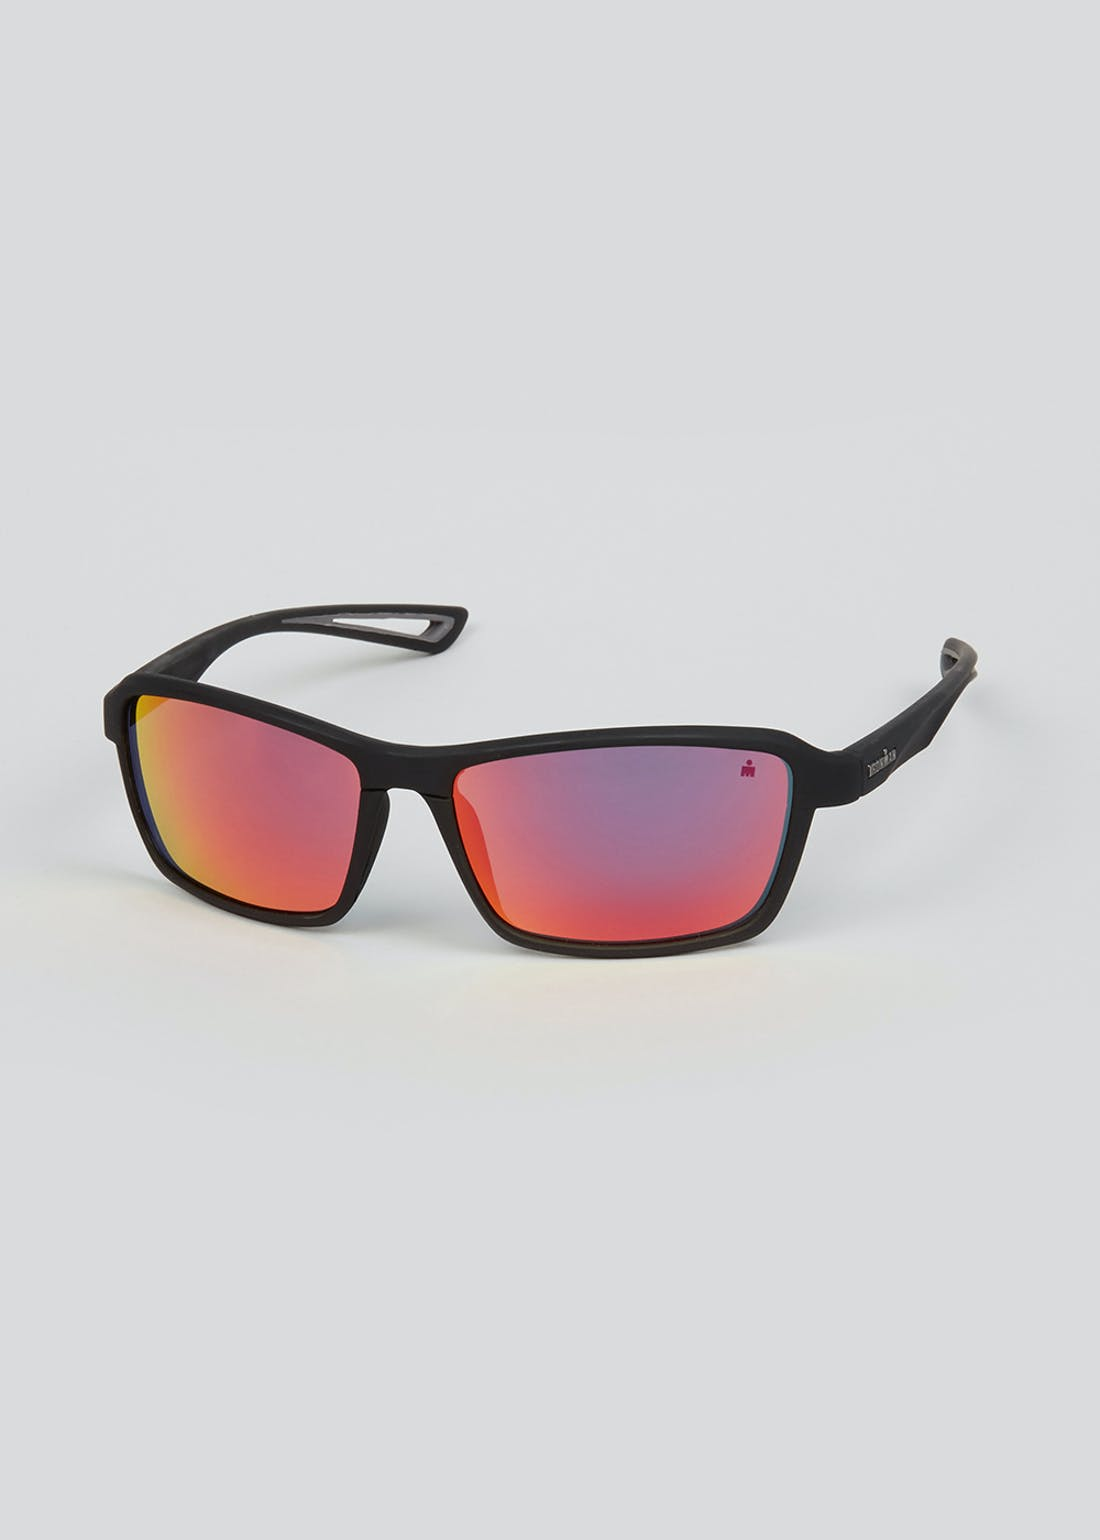 Foster Grant Tinted Sports Sunglasses